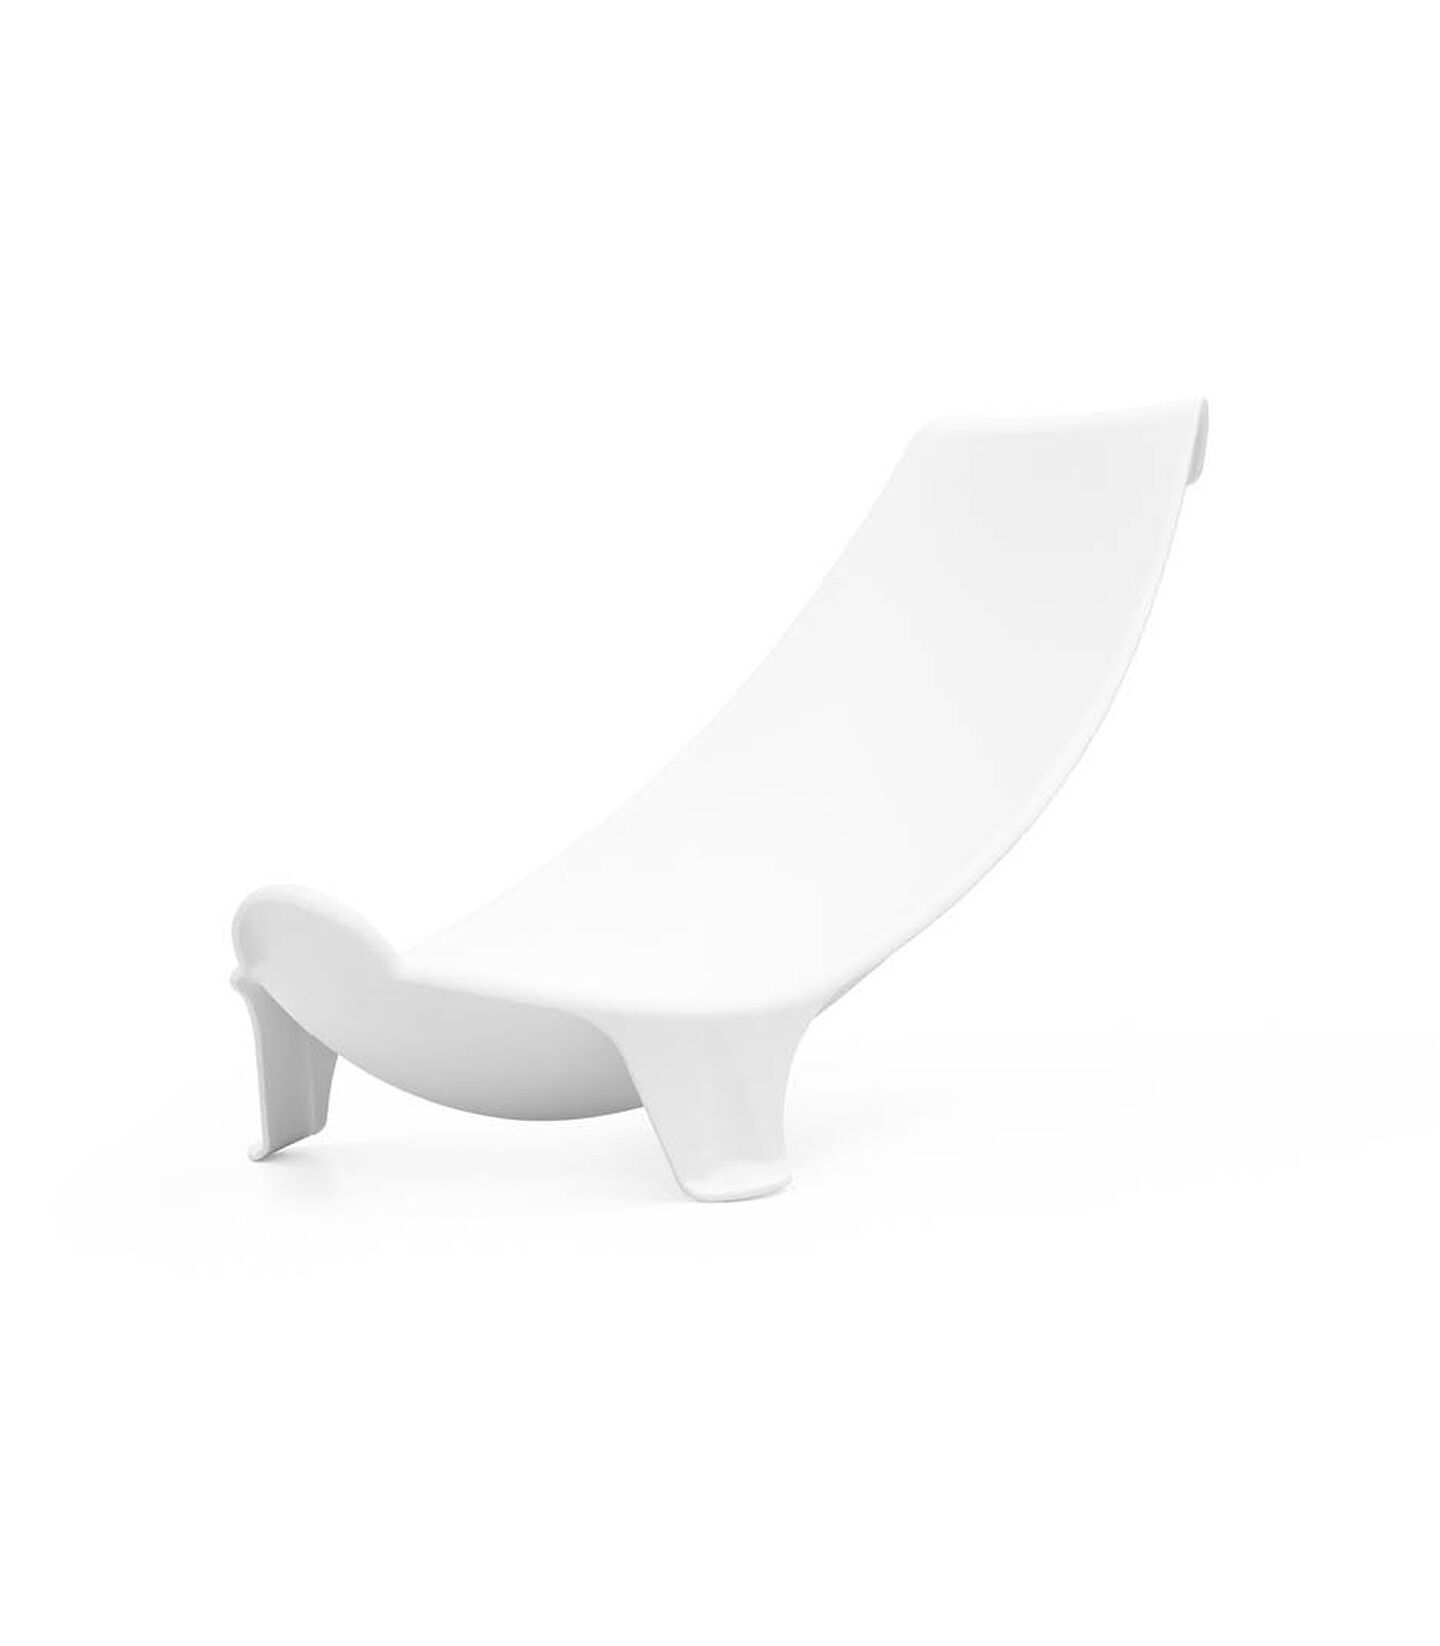 Stokke® Flexi Bath® Newborn Support, , mainview view 2